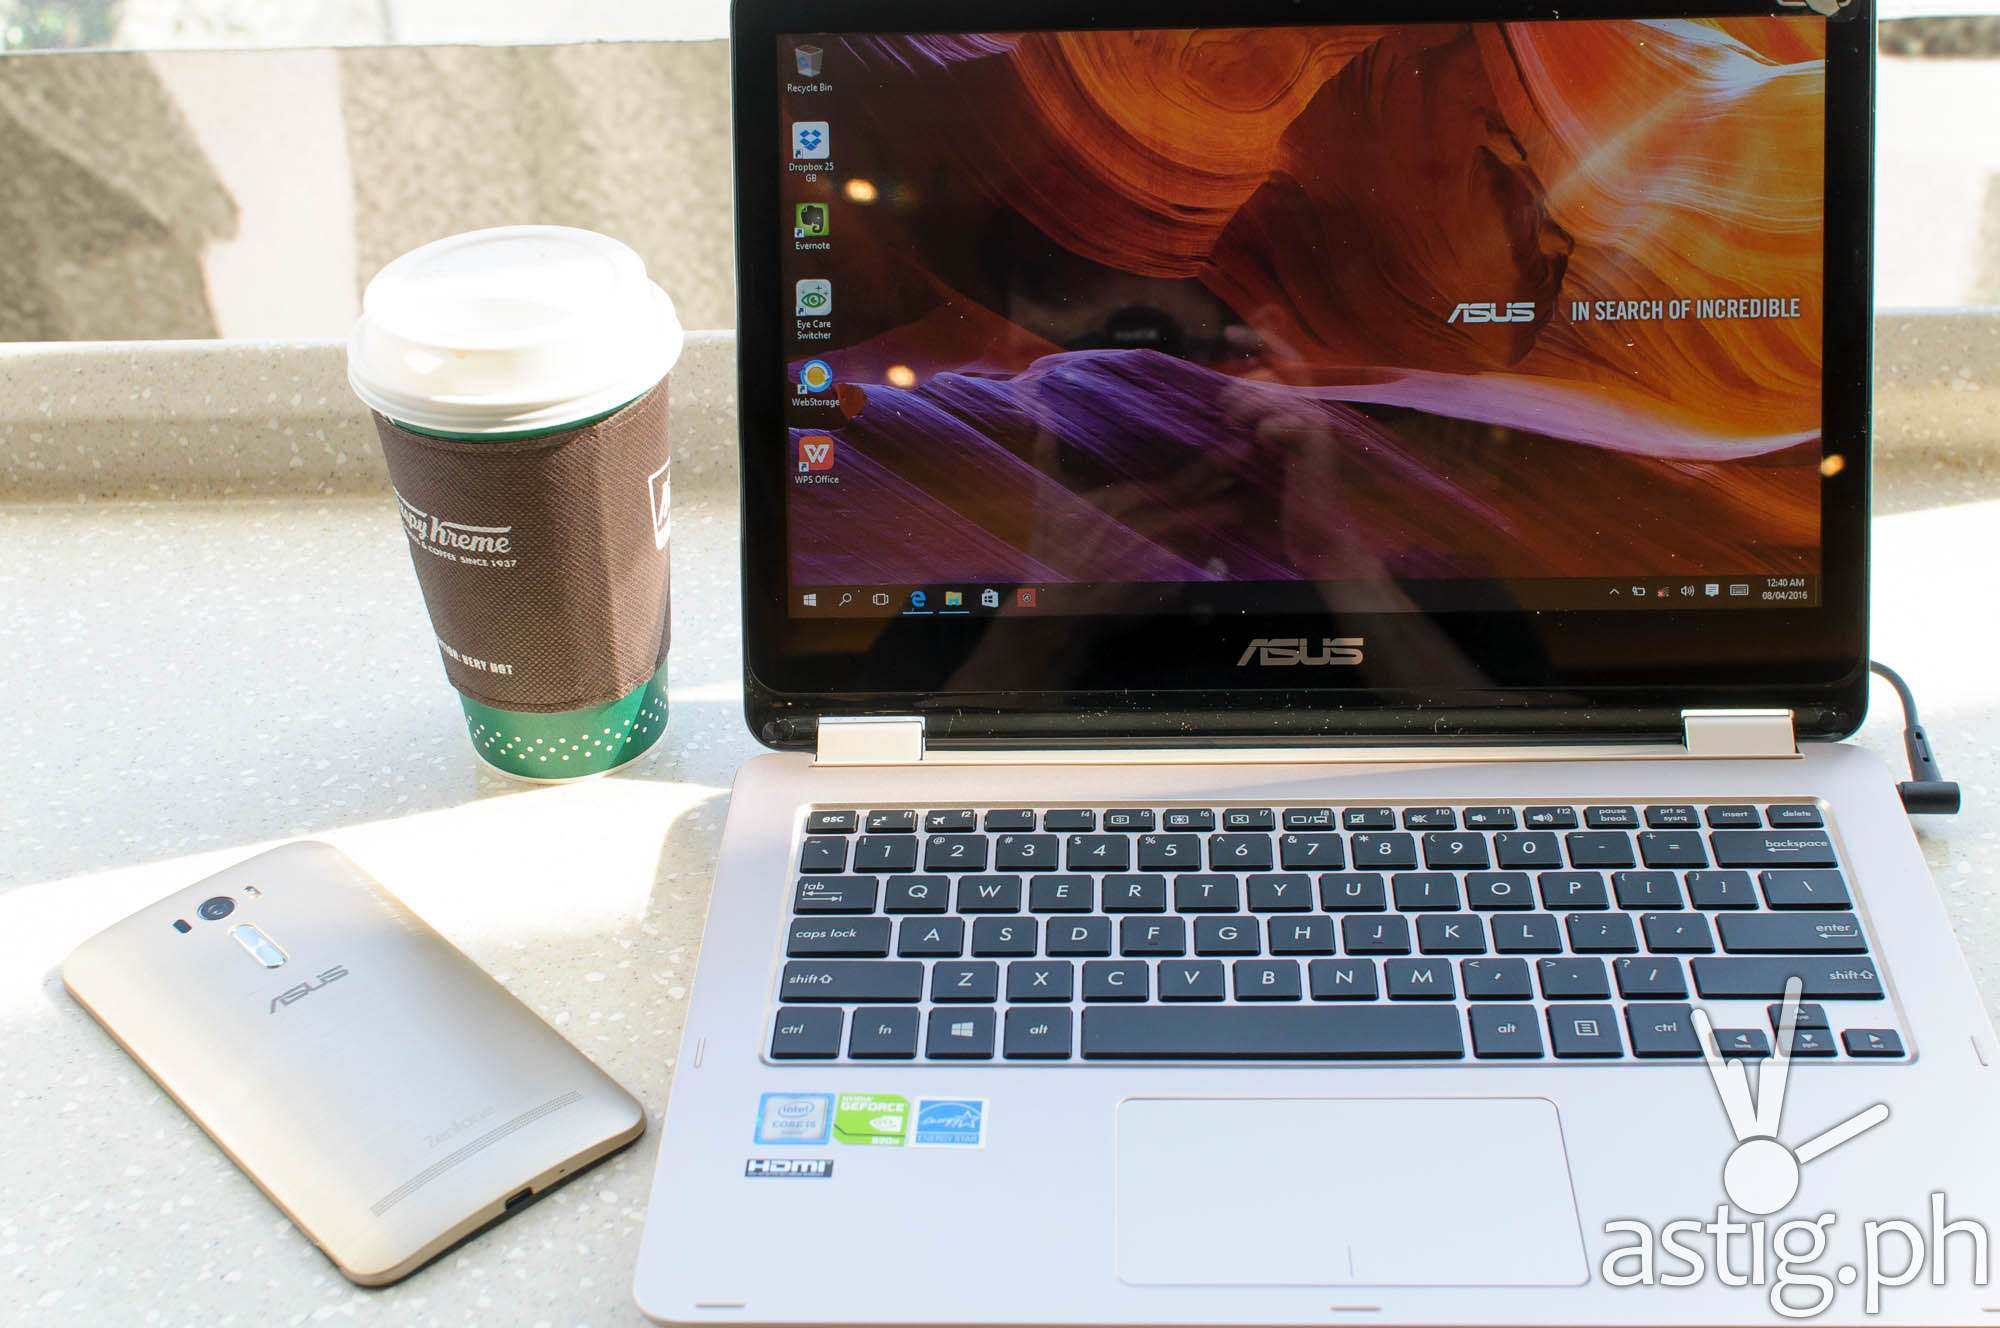 You can use the ASUS ViVoBook Flip as a tablet, or like a normal laptop, just flip and go! - ASUS ViVoBook Flip TP301UJ (28)